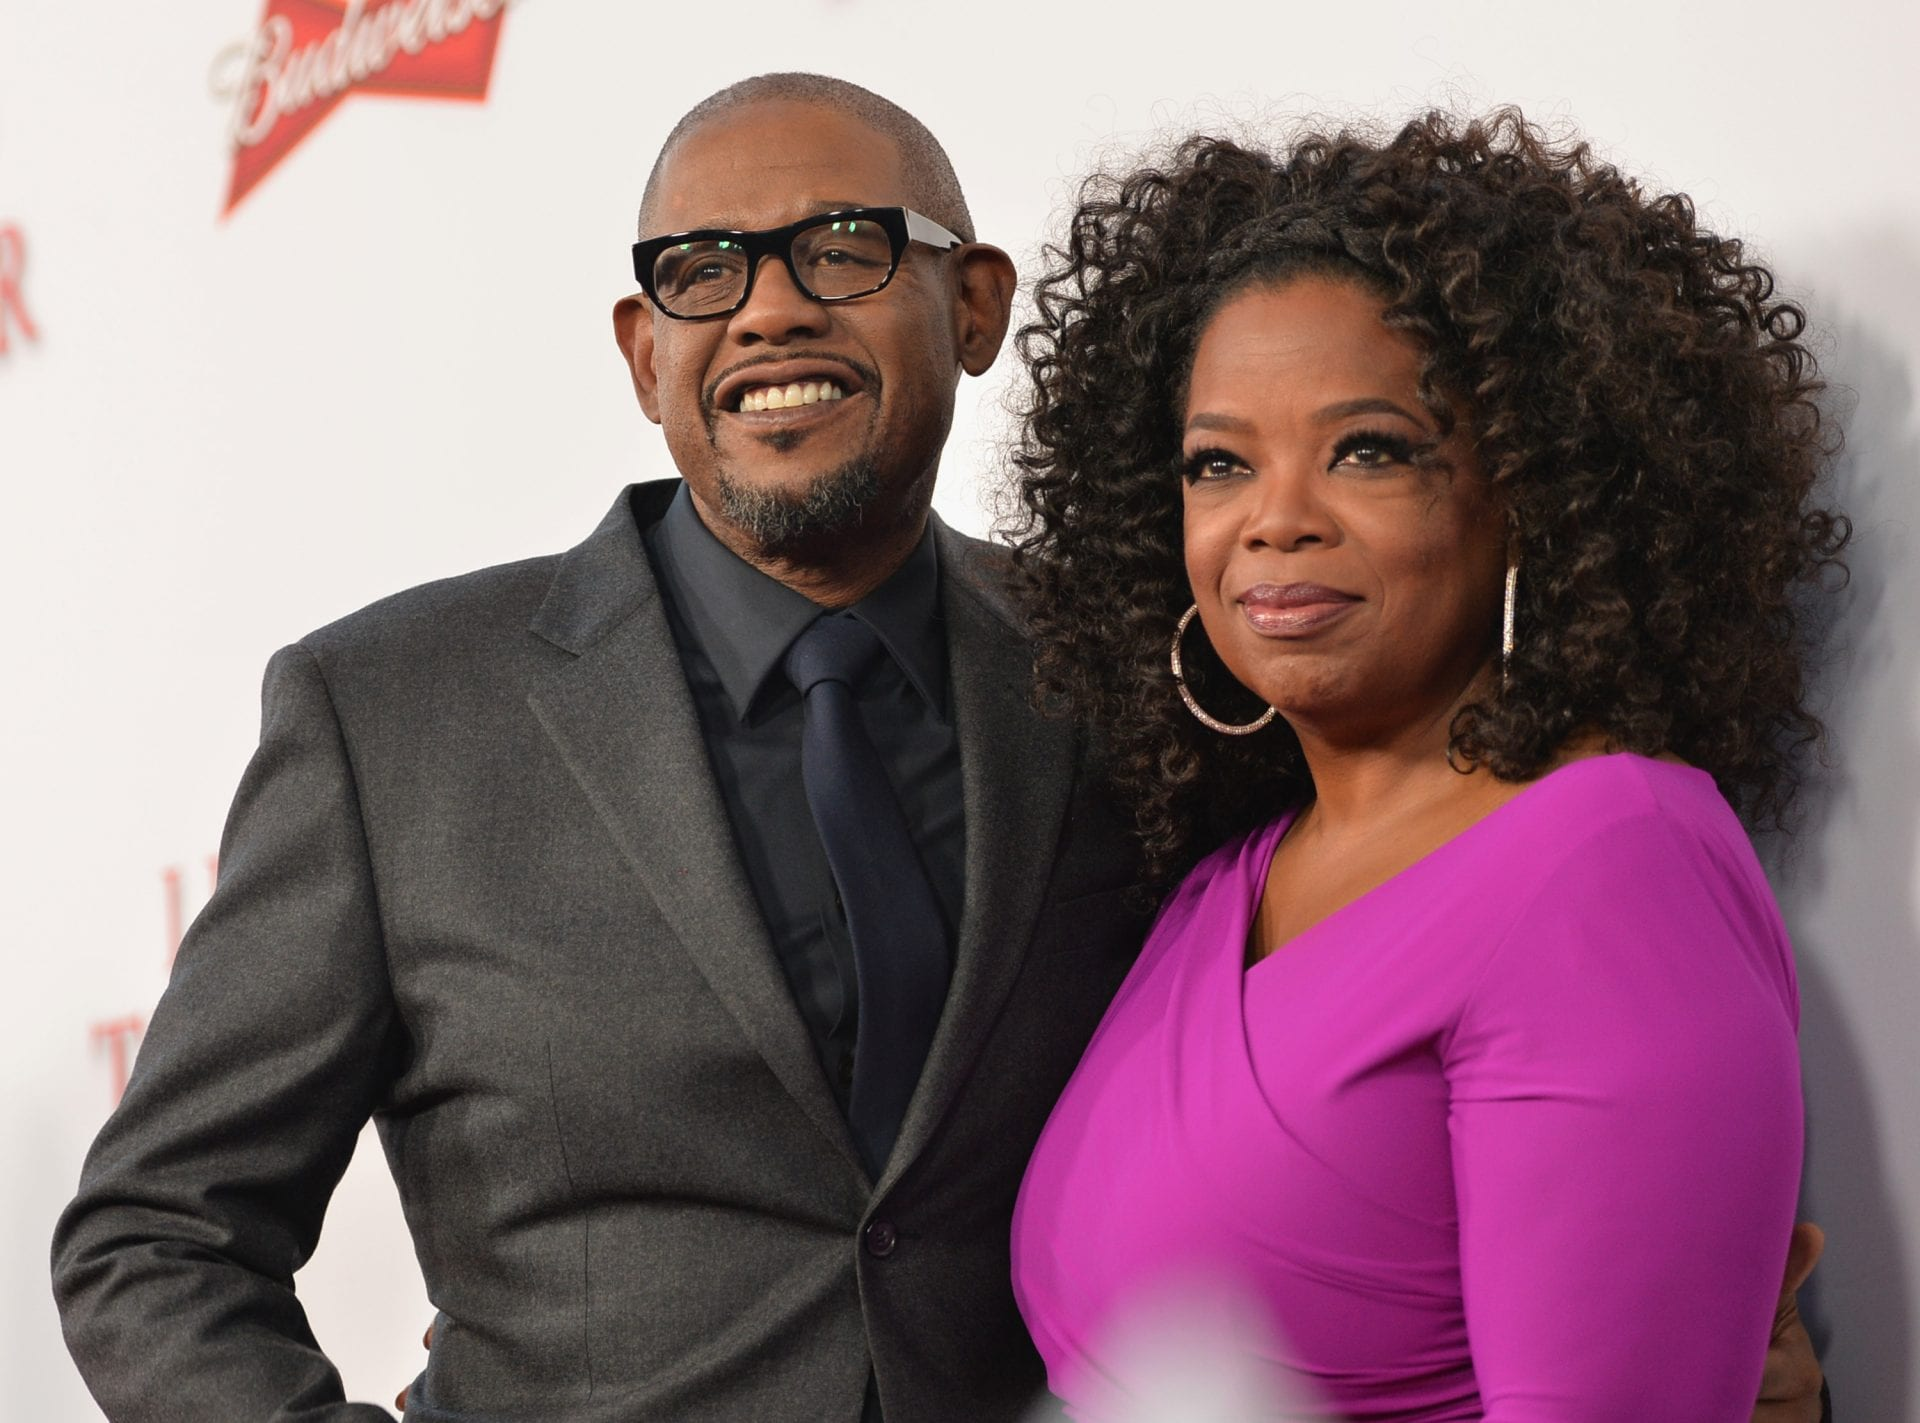 """Actor Forest Whitaker and Oprah Winfrey attend the Premiere Of The Weinstein Company's """"Lee Daniels' The Butler"""" at Regal Cinemas L.A. Live on August 12, 2013 in Los Angeles, California. (Photo by Alberto E. Rodriguez/Getty Images)"""